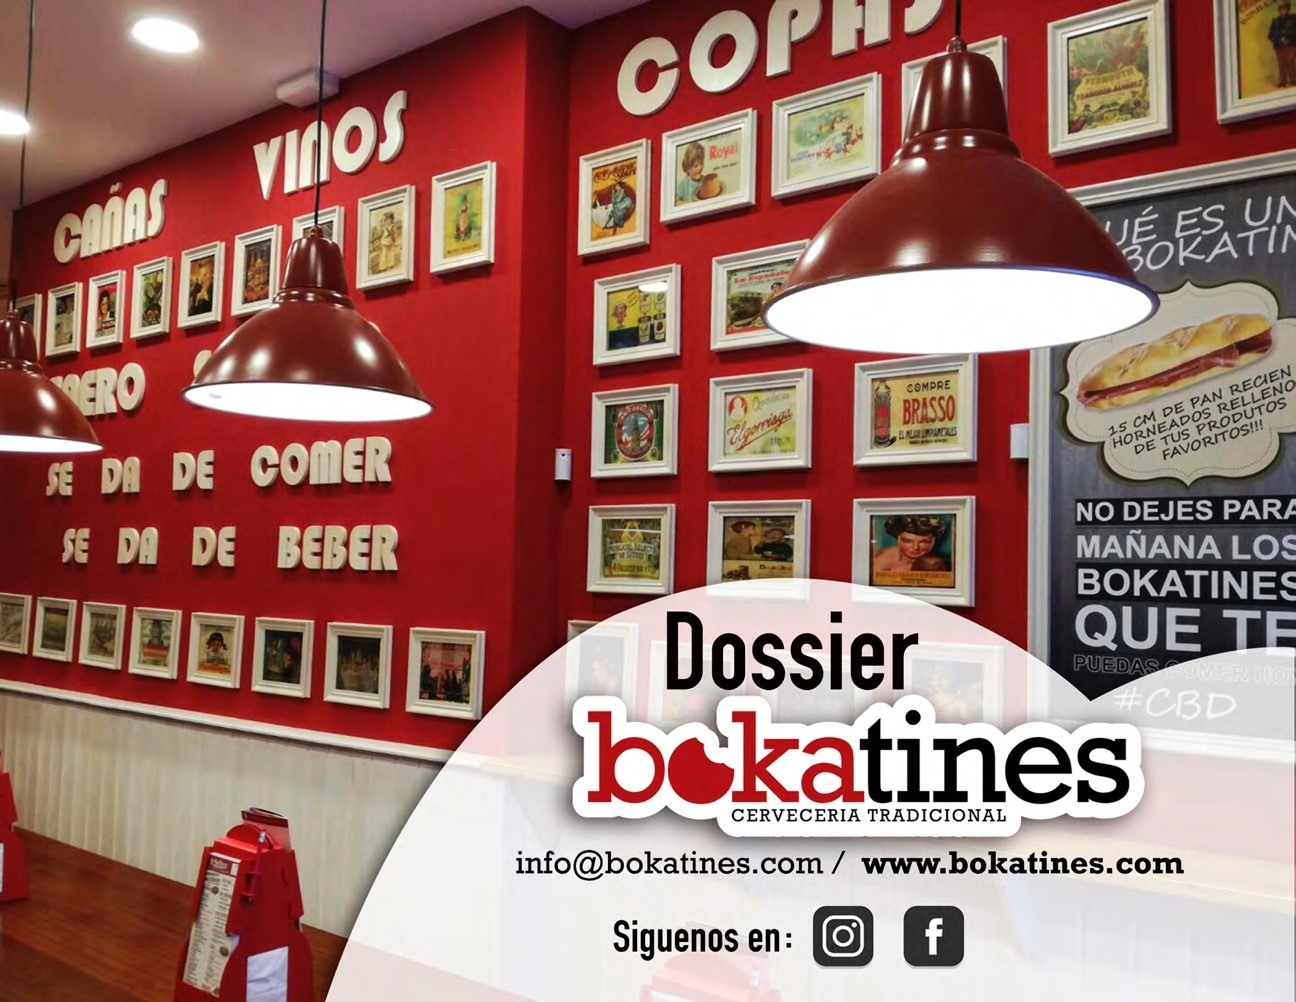 bokatines solicitud dossier